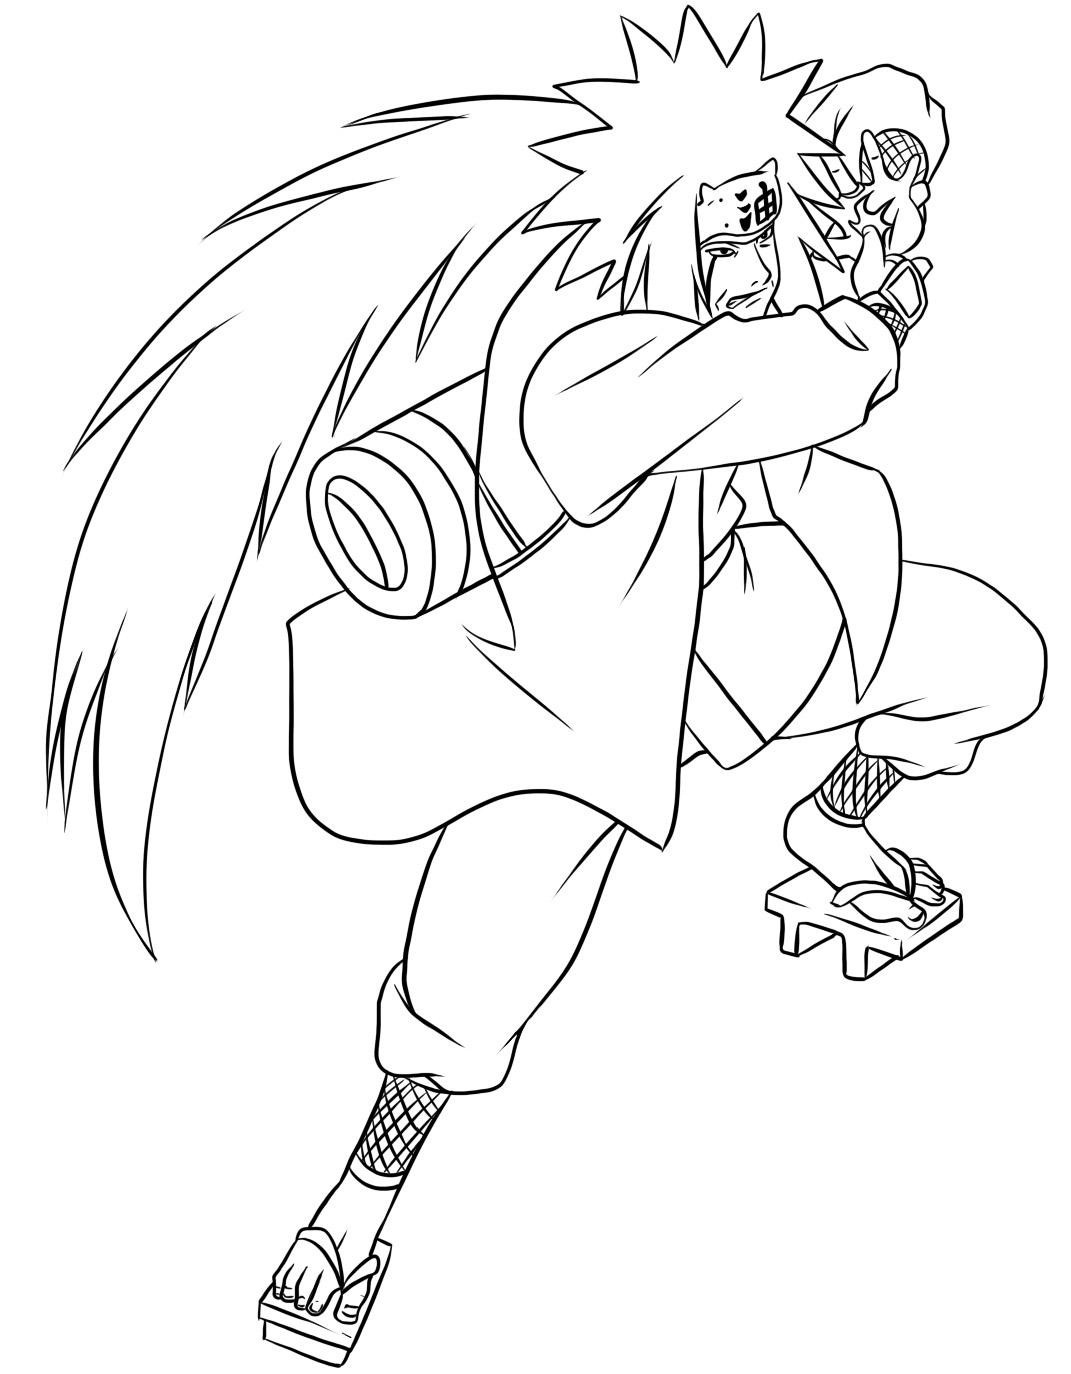 Top 25 Free Printable Naruto Coloring Pages Online | Coloring ... | 1374x1071